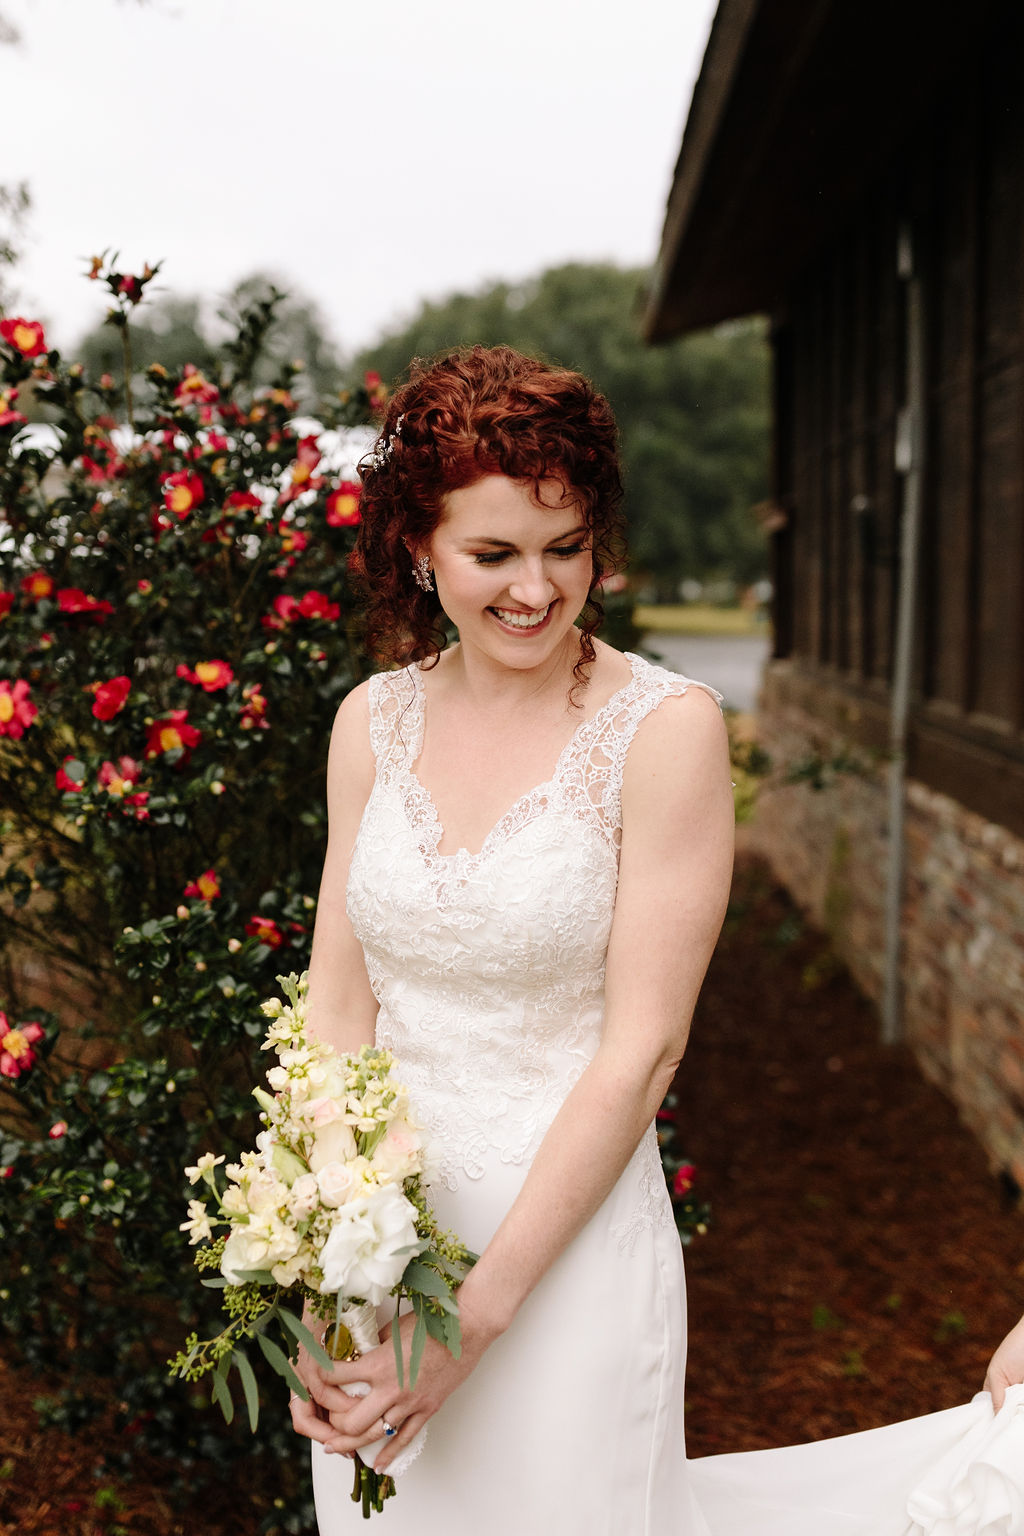 Elizabeth Ervin Weddings